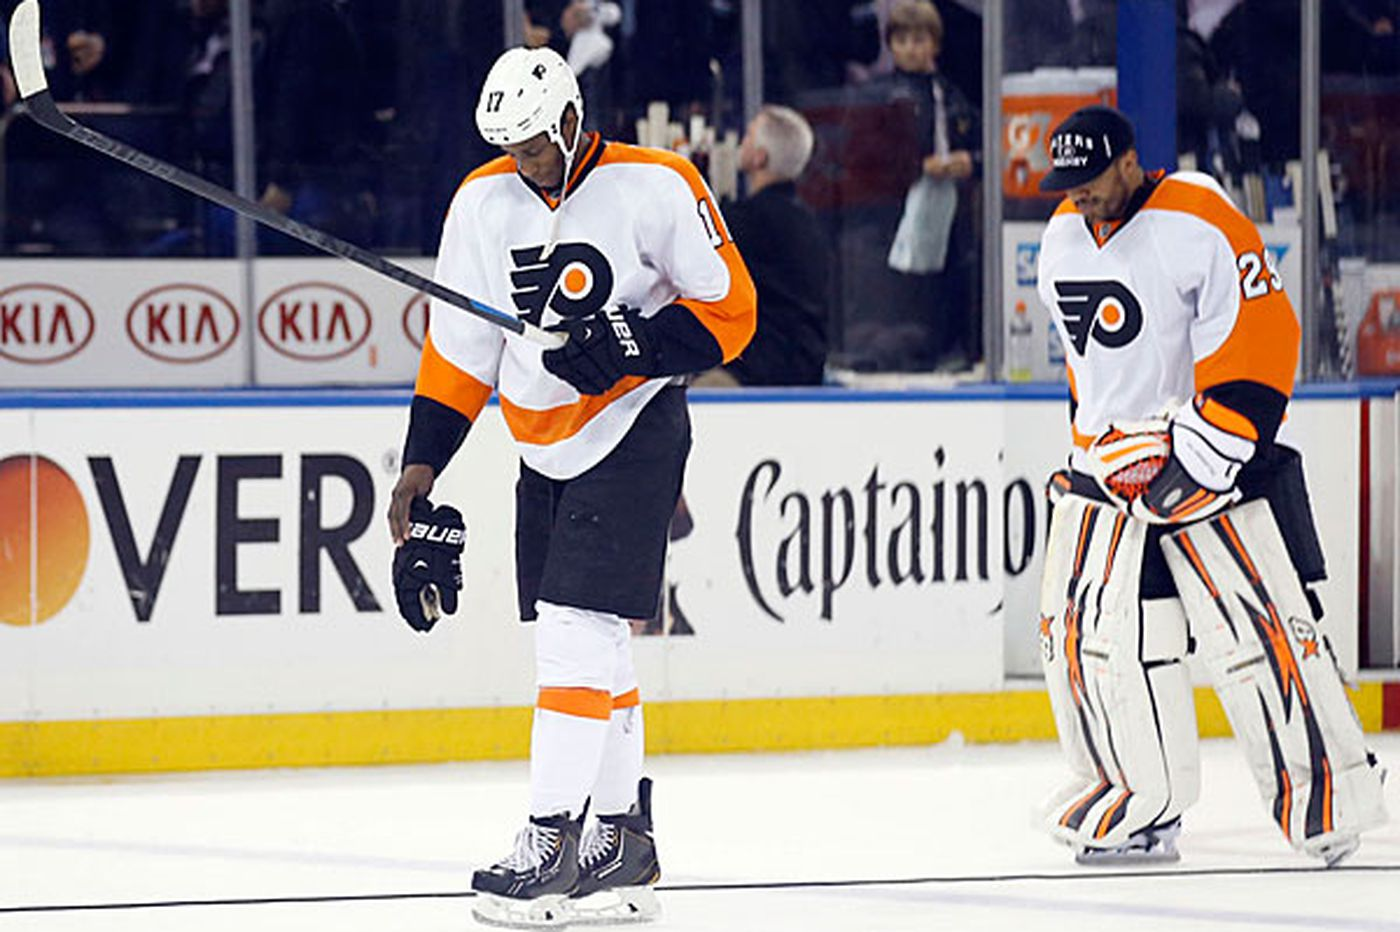 Inside the Flyers: How can the Flyers improve?